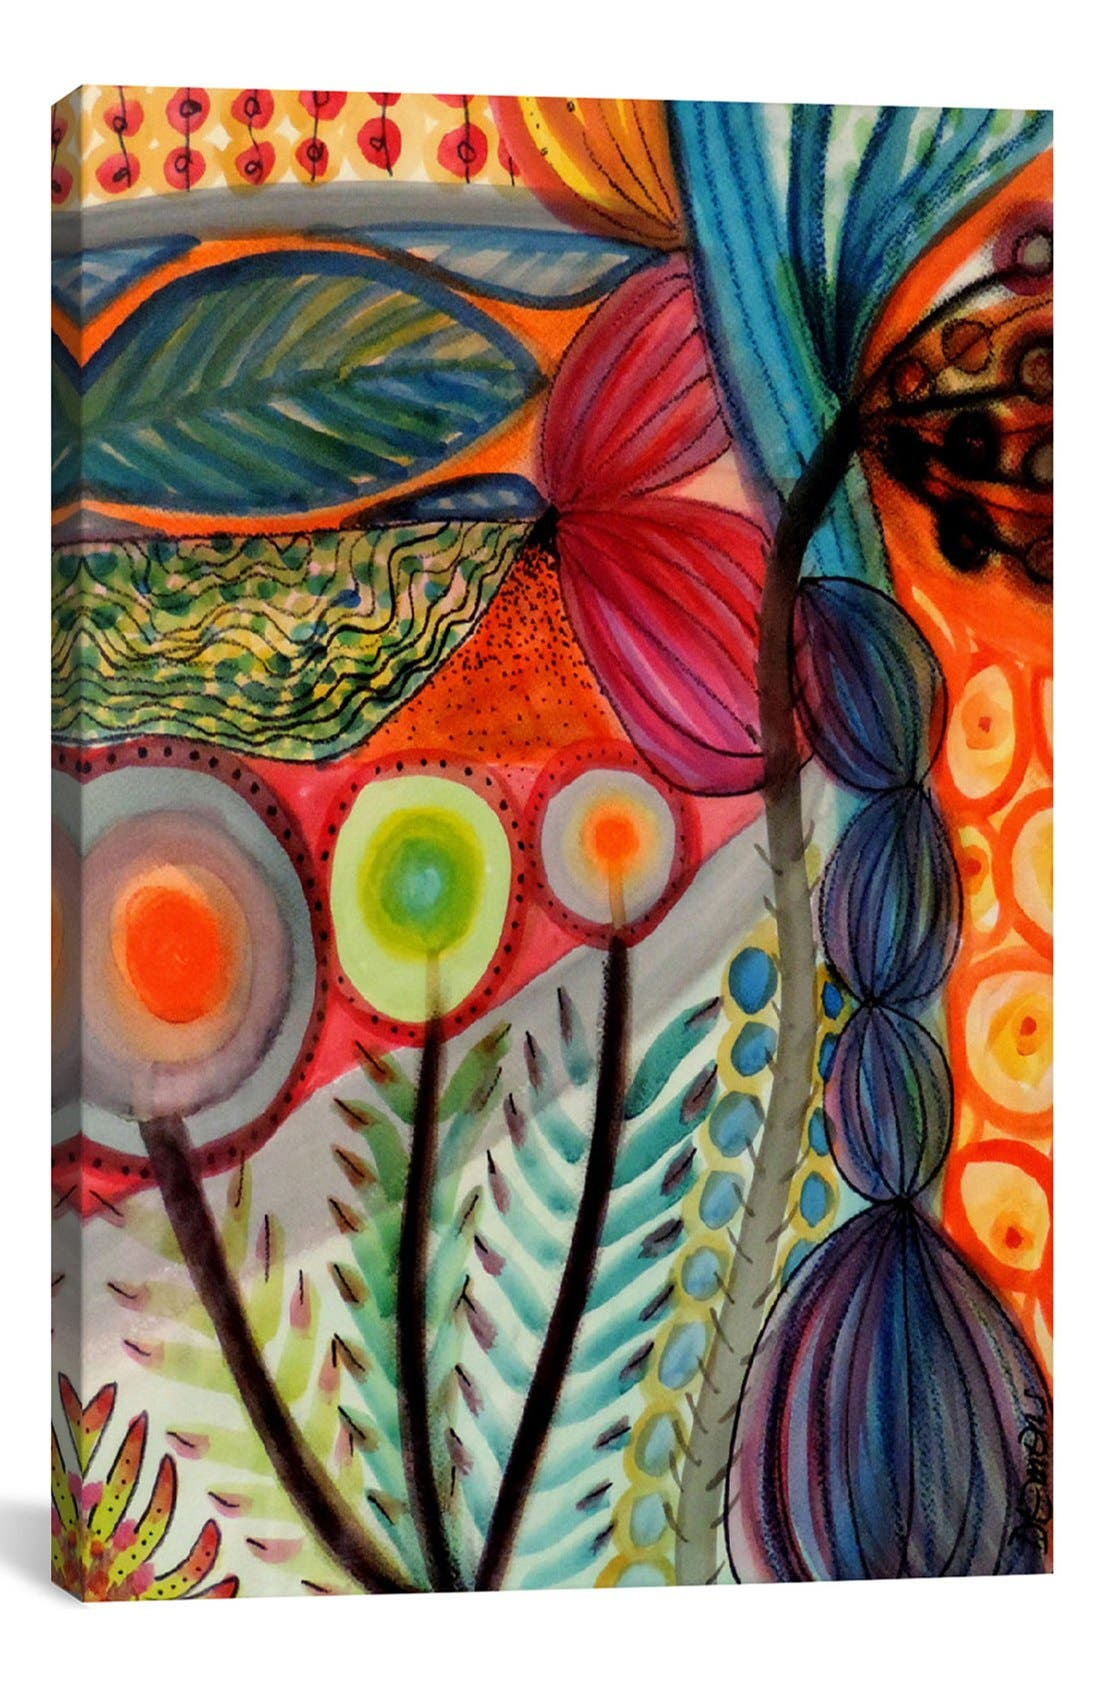 'Vivaces - Sylvie Demers' Giclée Print Canvas Art,                             Main thumbnail 1, color,                             Orange